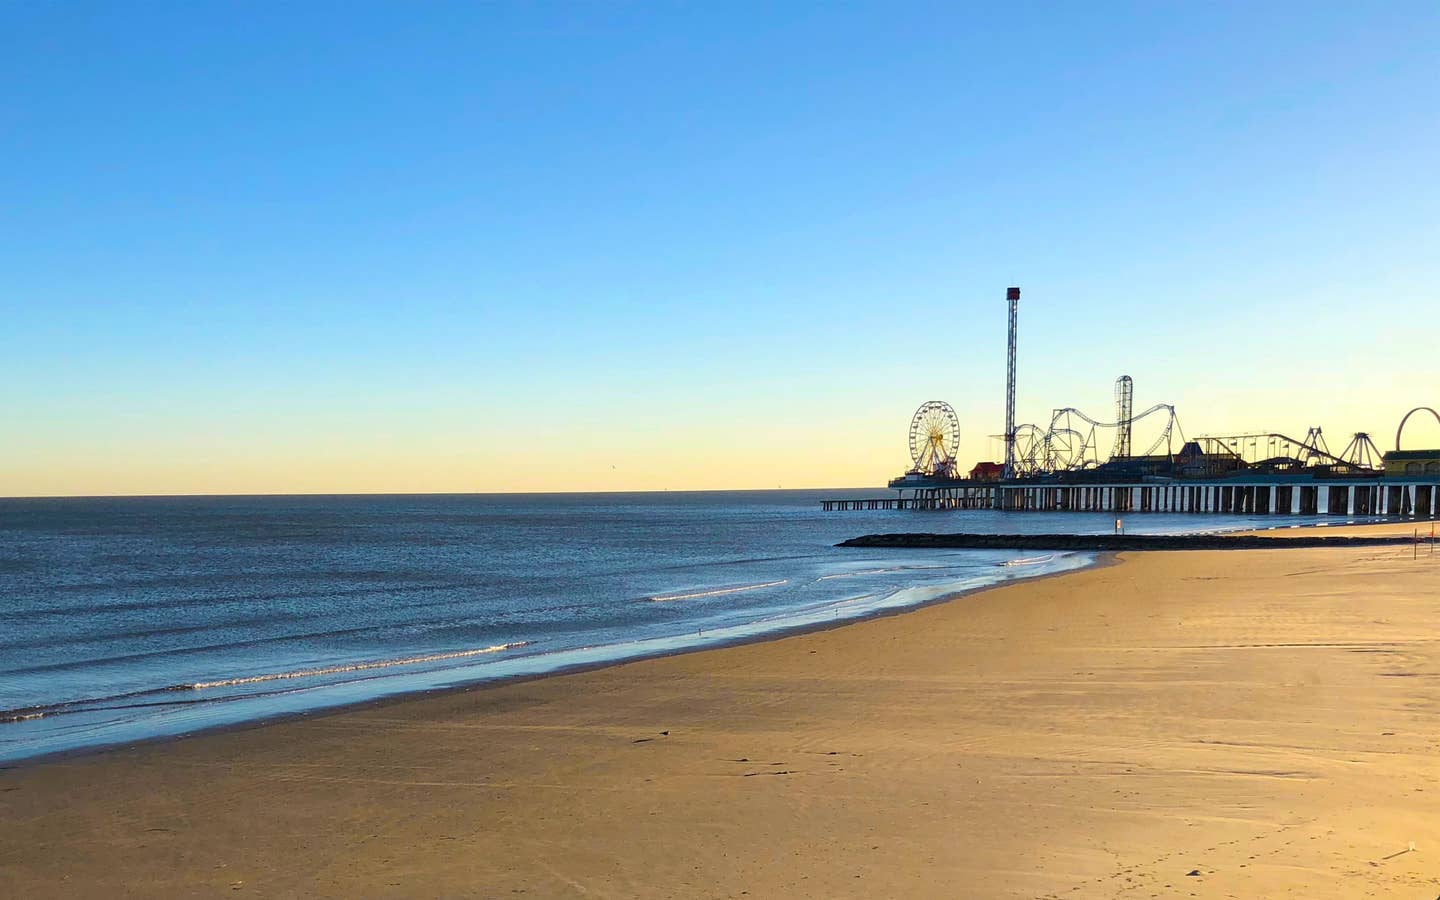 A view of Pleasure Pier near Galveston Seaside Resort.